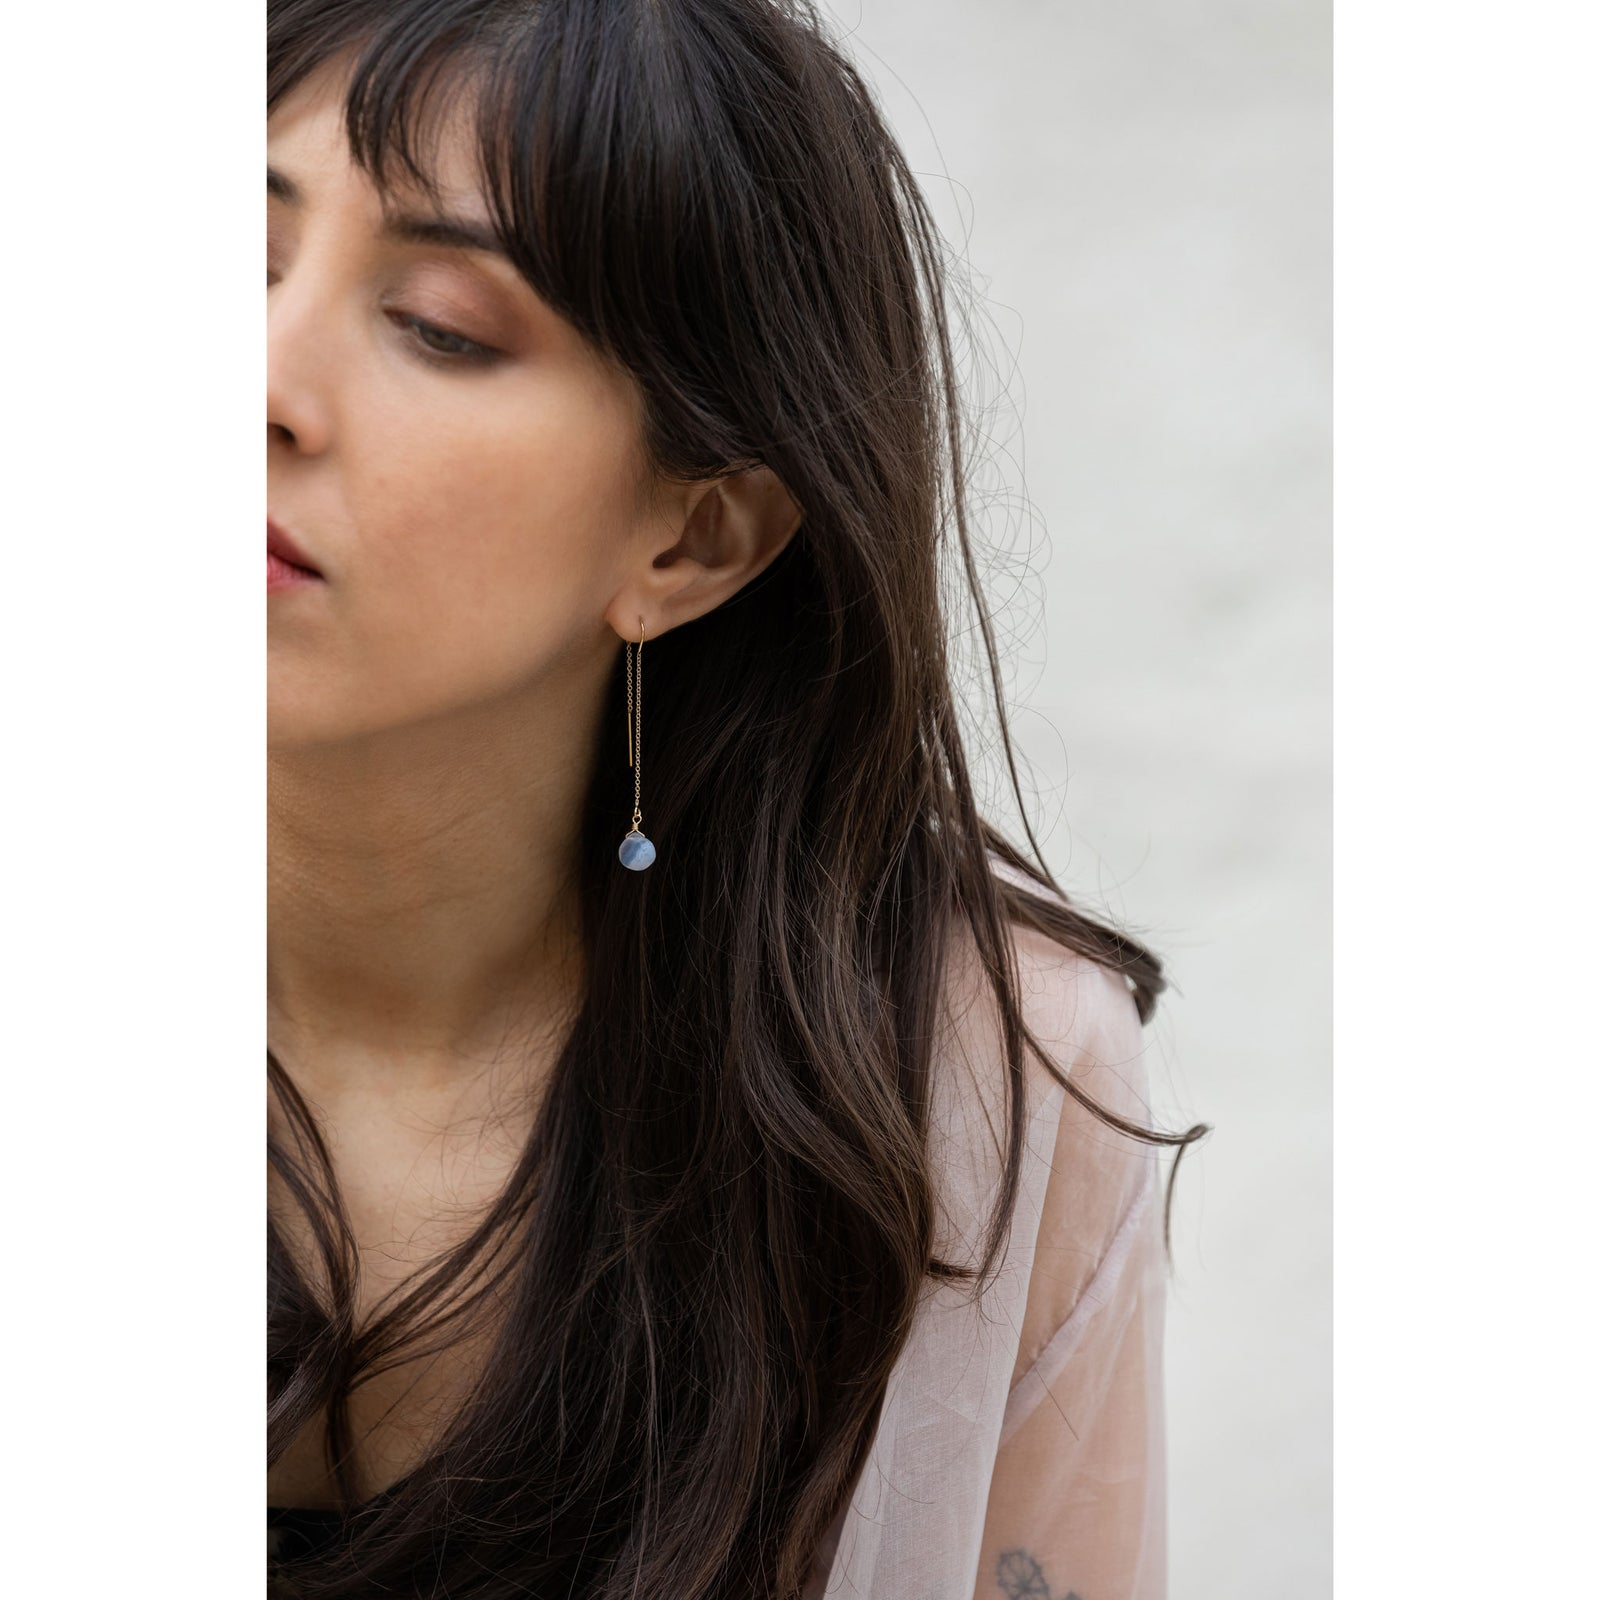 Wanderlust Life Ethically Handmade jewellery made in the UK. Minimalist gold and fine cord jewellery. waterfall earring, blue lace agate